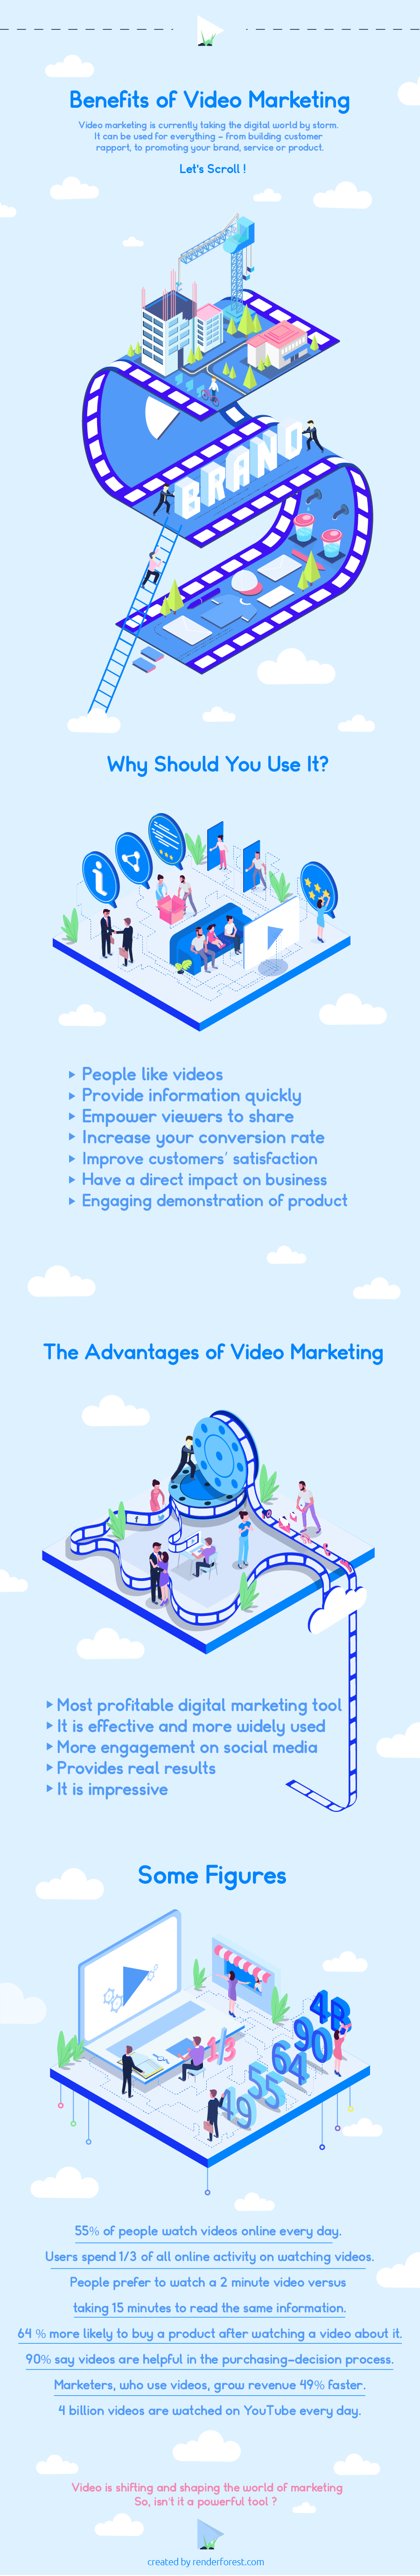 Benefits of Video Marketing [Infographic]